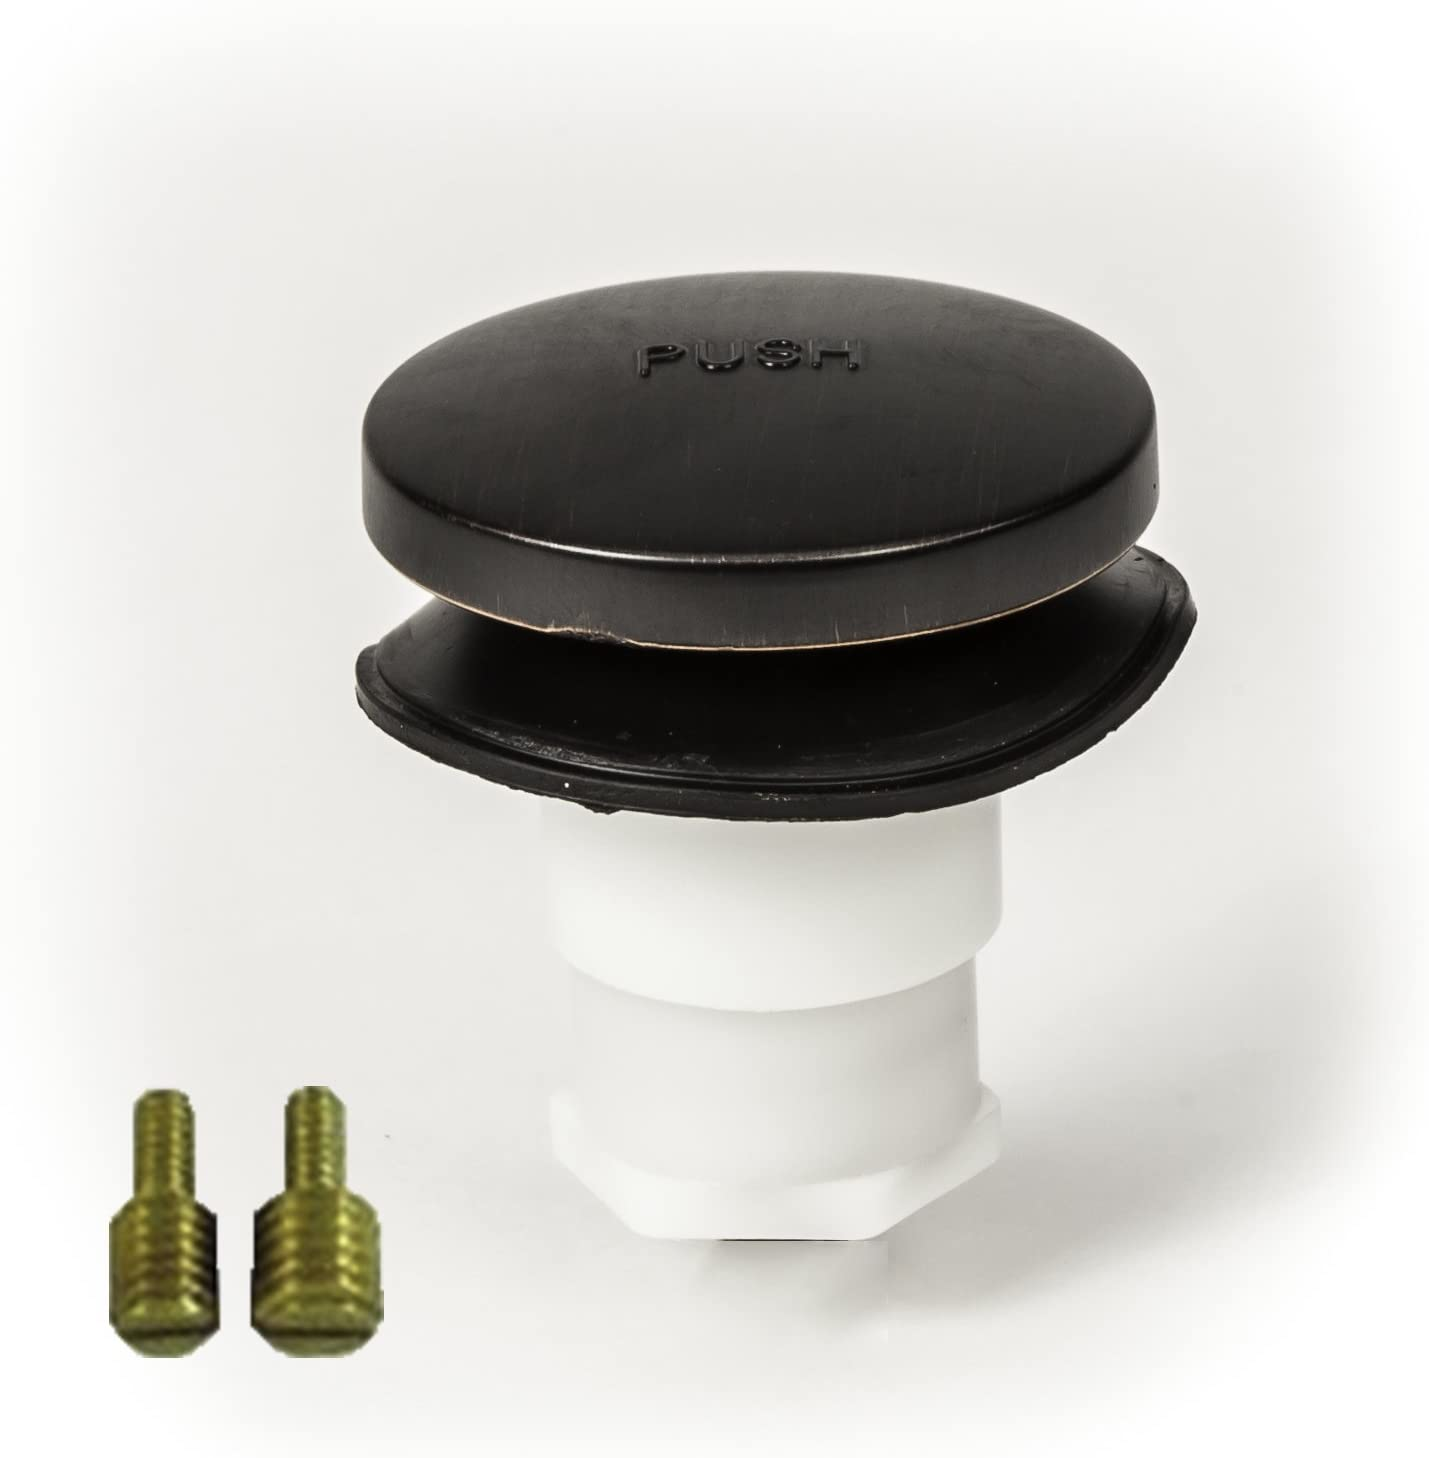 "PF WaterWorks PF0935-ORB Universal Touch (Tip Toe or Foot Actuated) Bathtub/Bath Tub Drain Stopper includes 3/8"" and 5/16"" Fittings, No Hair Catcher, Oil Rubbed Bronze"